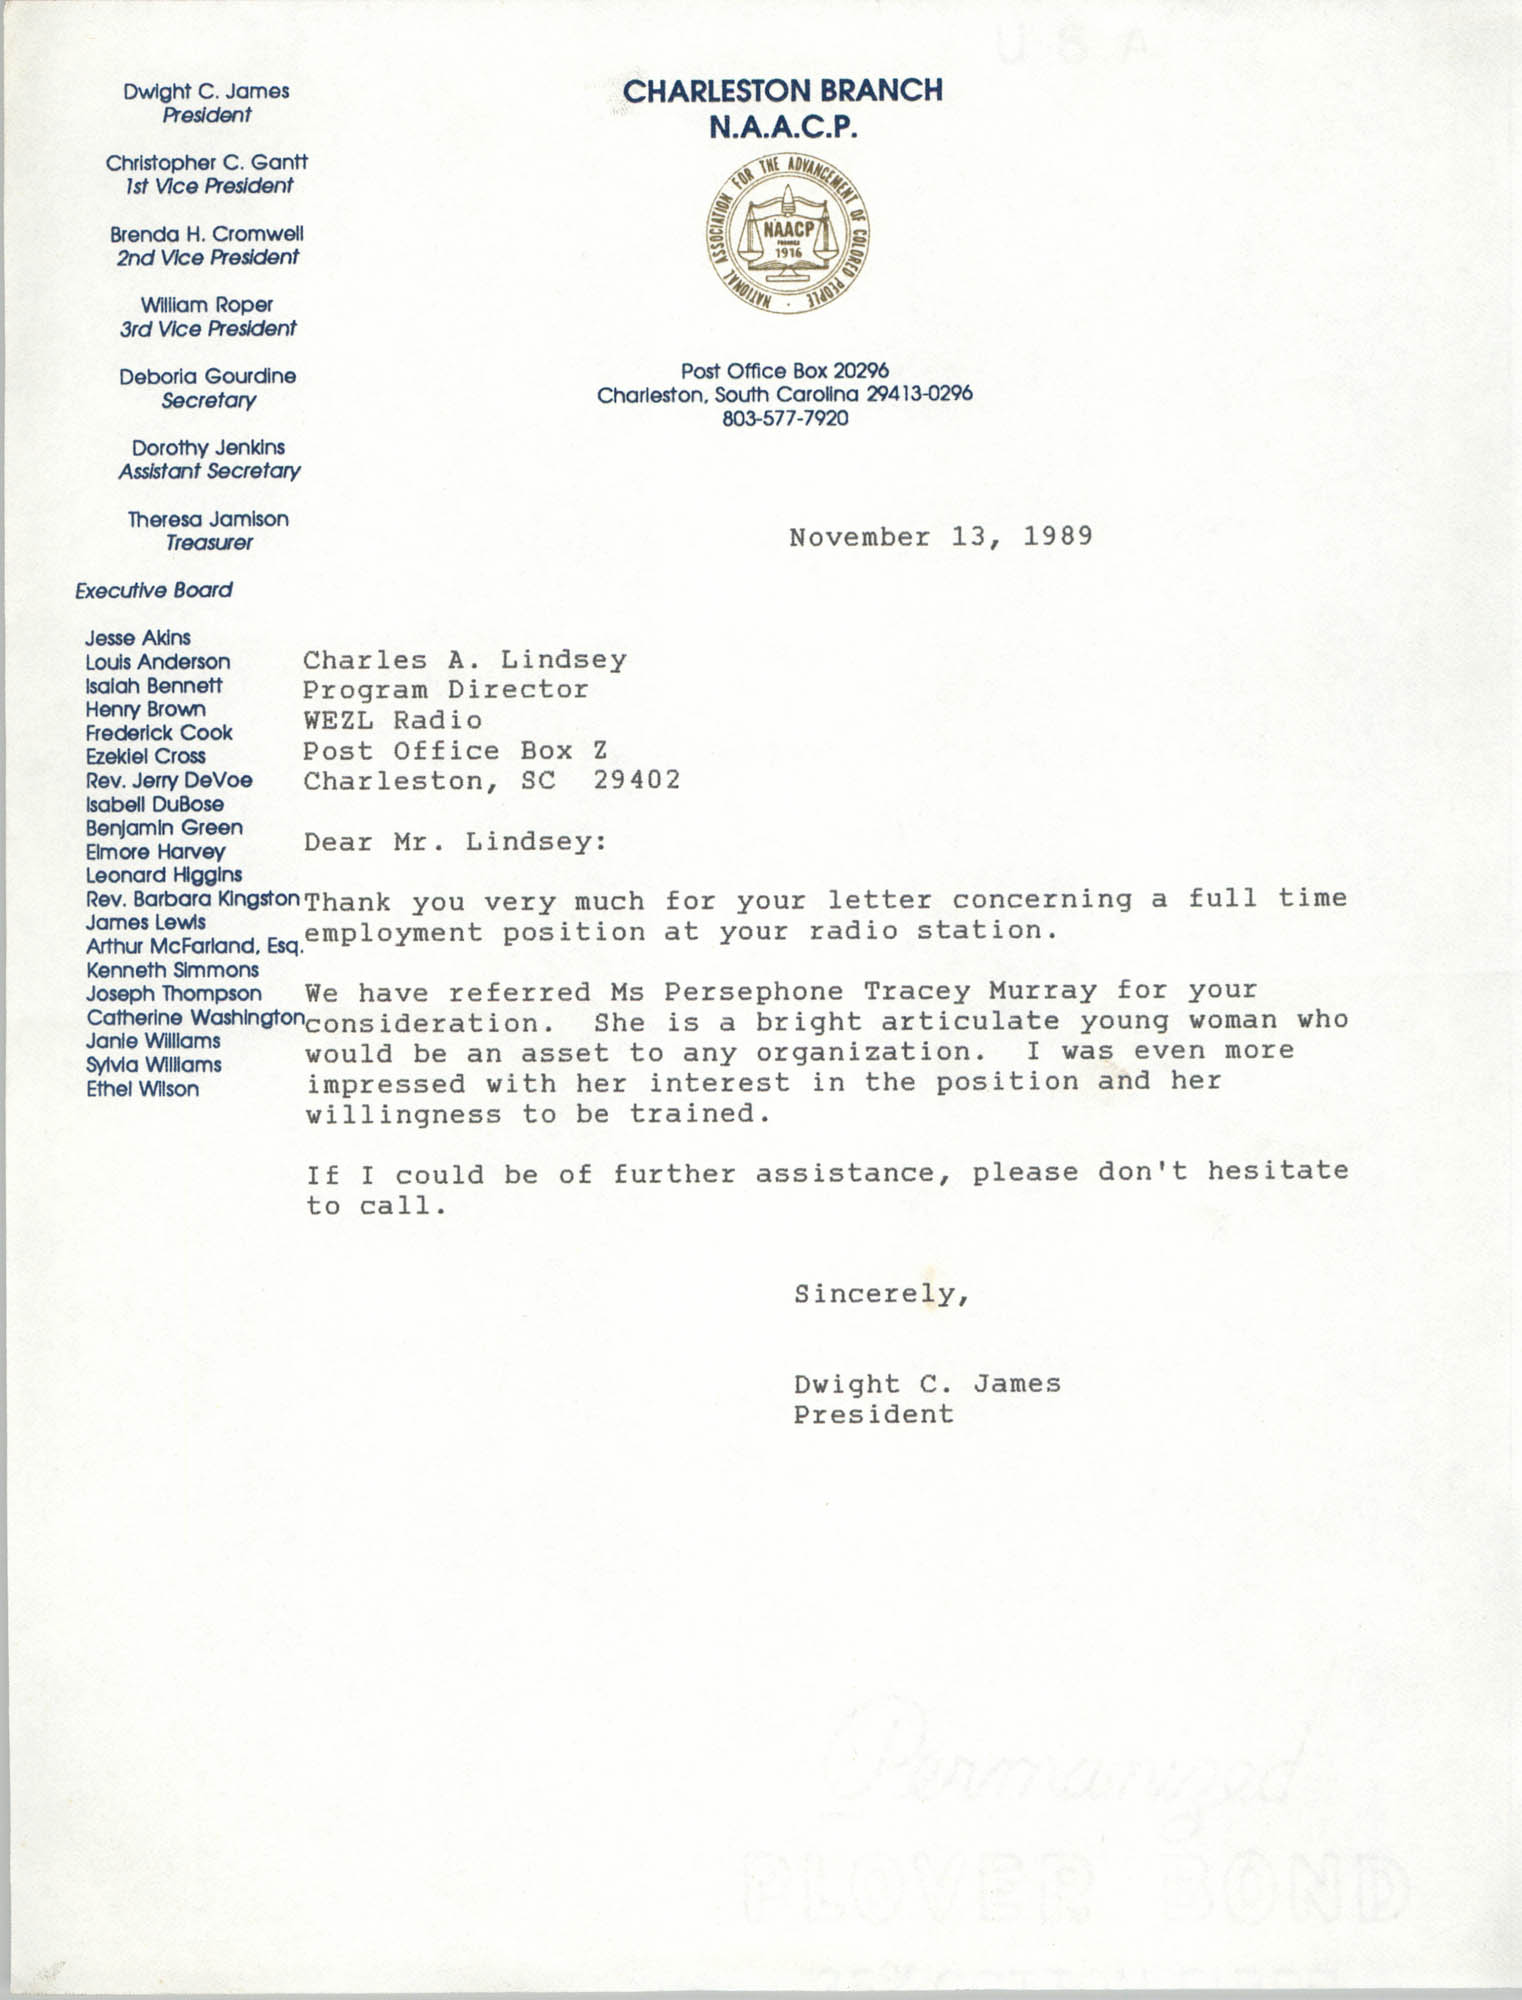 Letter from Dwight C. James to Charles A. Lindsey, November 13, 1989